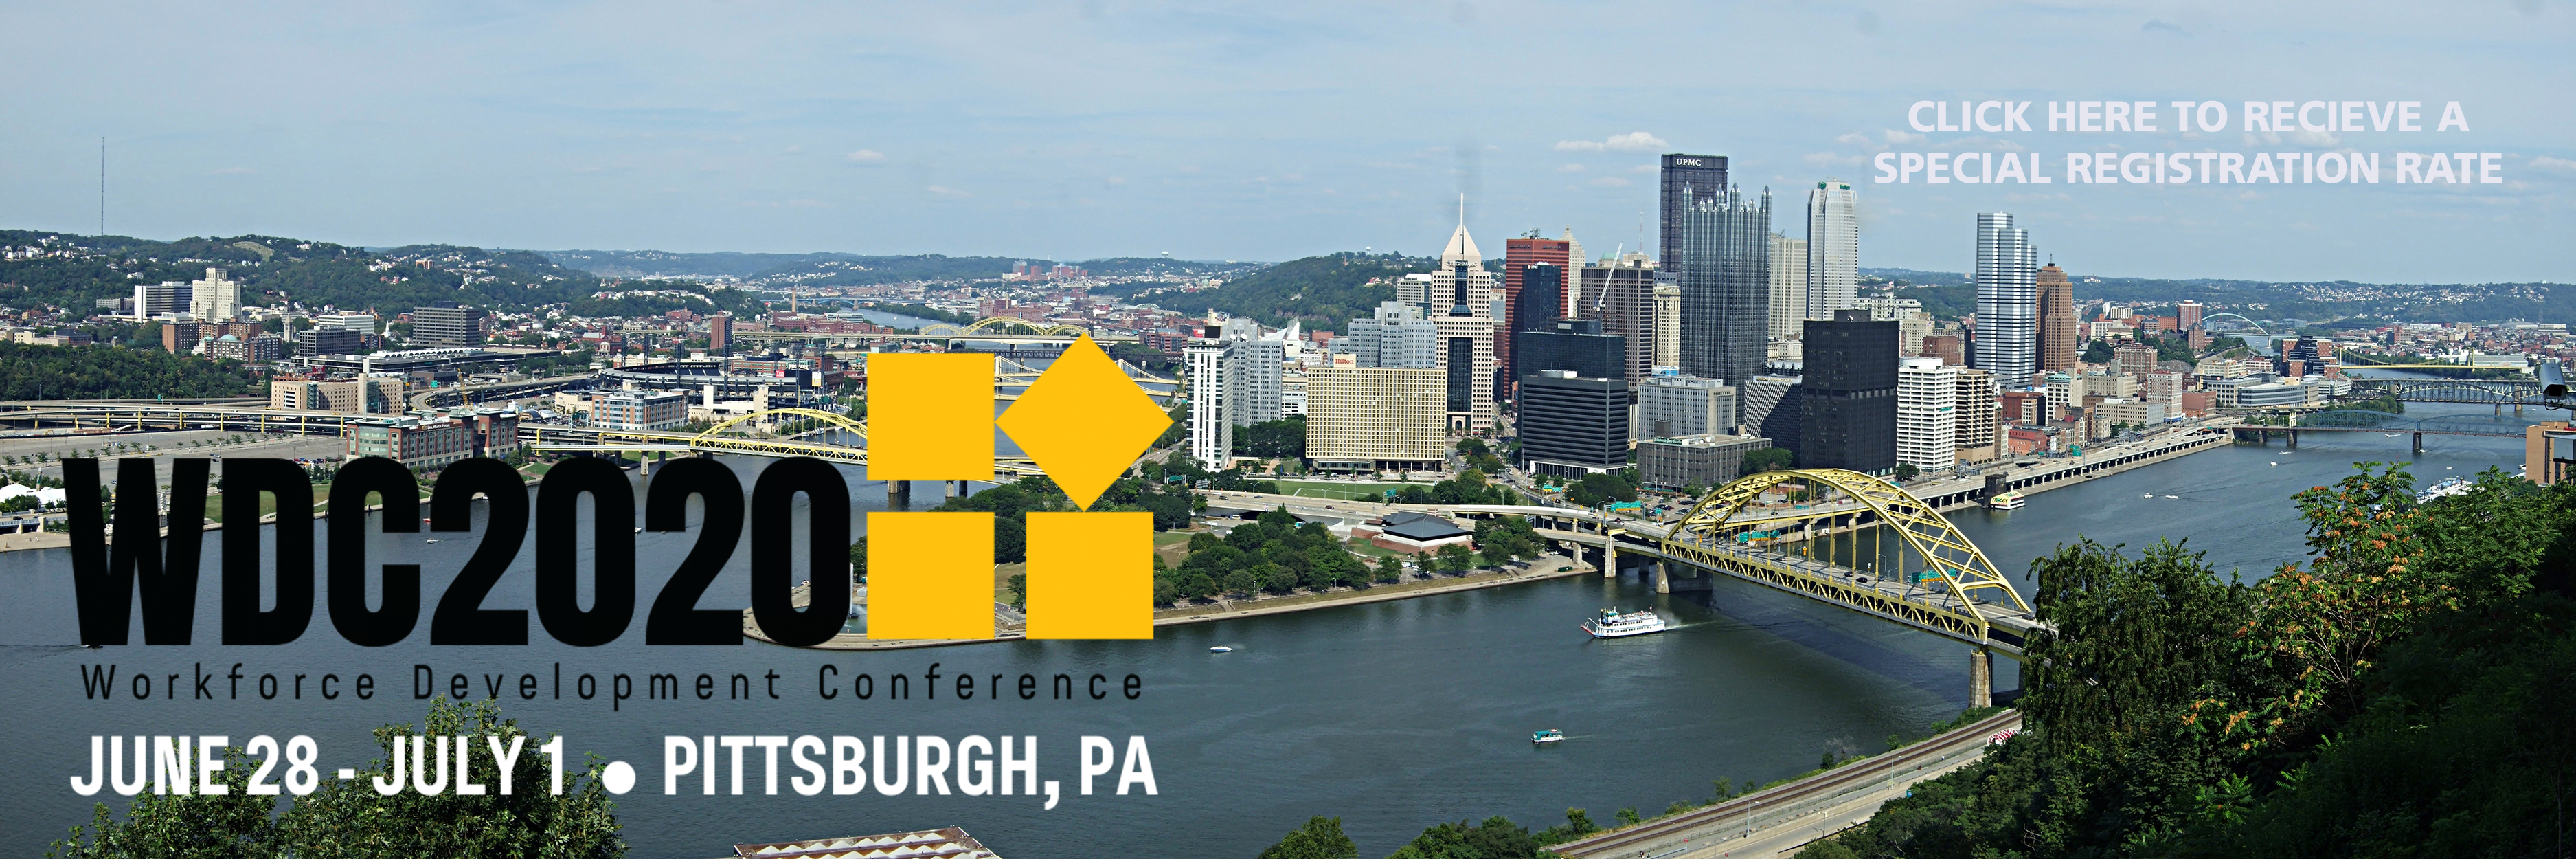 2020 Workforce Development Conference Pittsburgh, PA June 28-July 1